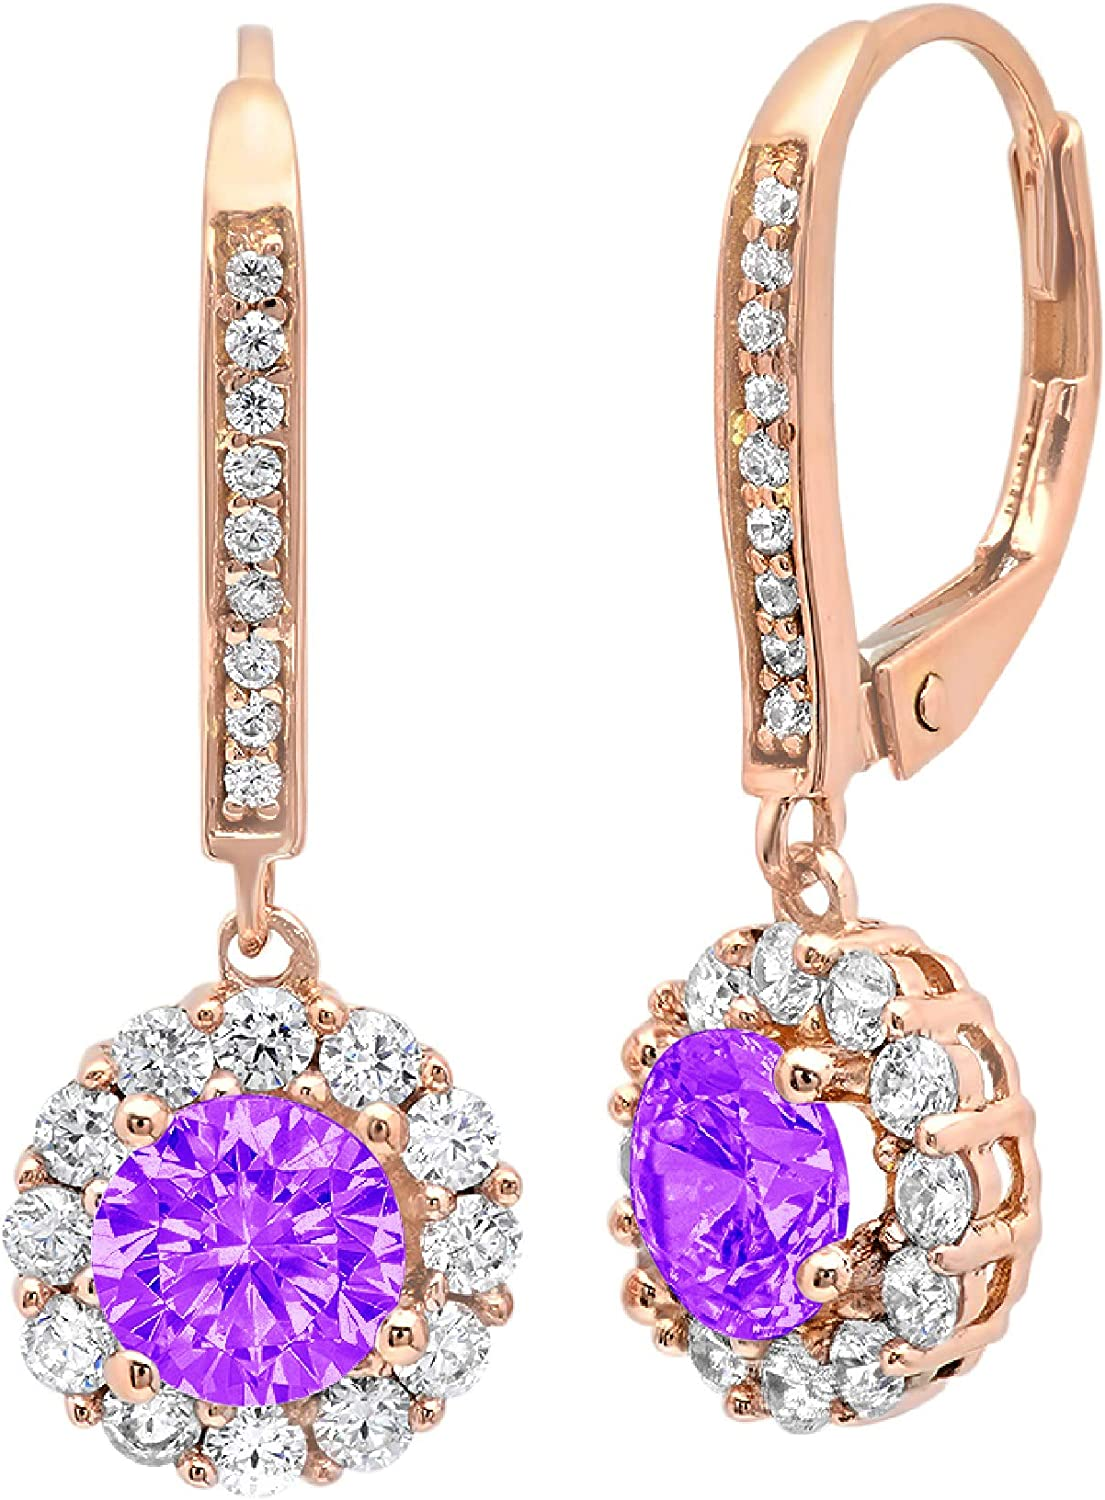 3.55 ct Round Cut ideal VVS1 Conflict Free Gemstone Halo Solitaire Natural Purple Amethyst Gem Stone Designer Lever back Drop Dangle Earrings Solid 14k rose Gold